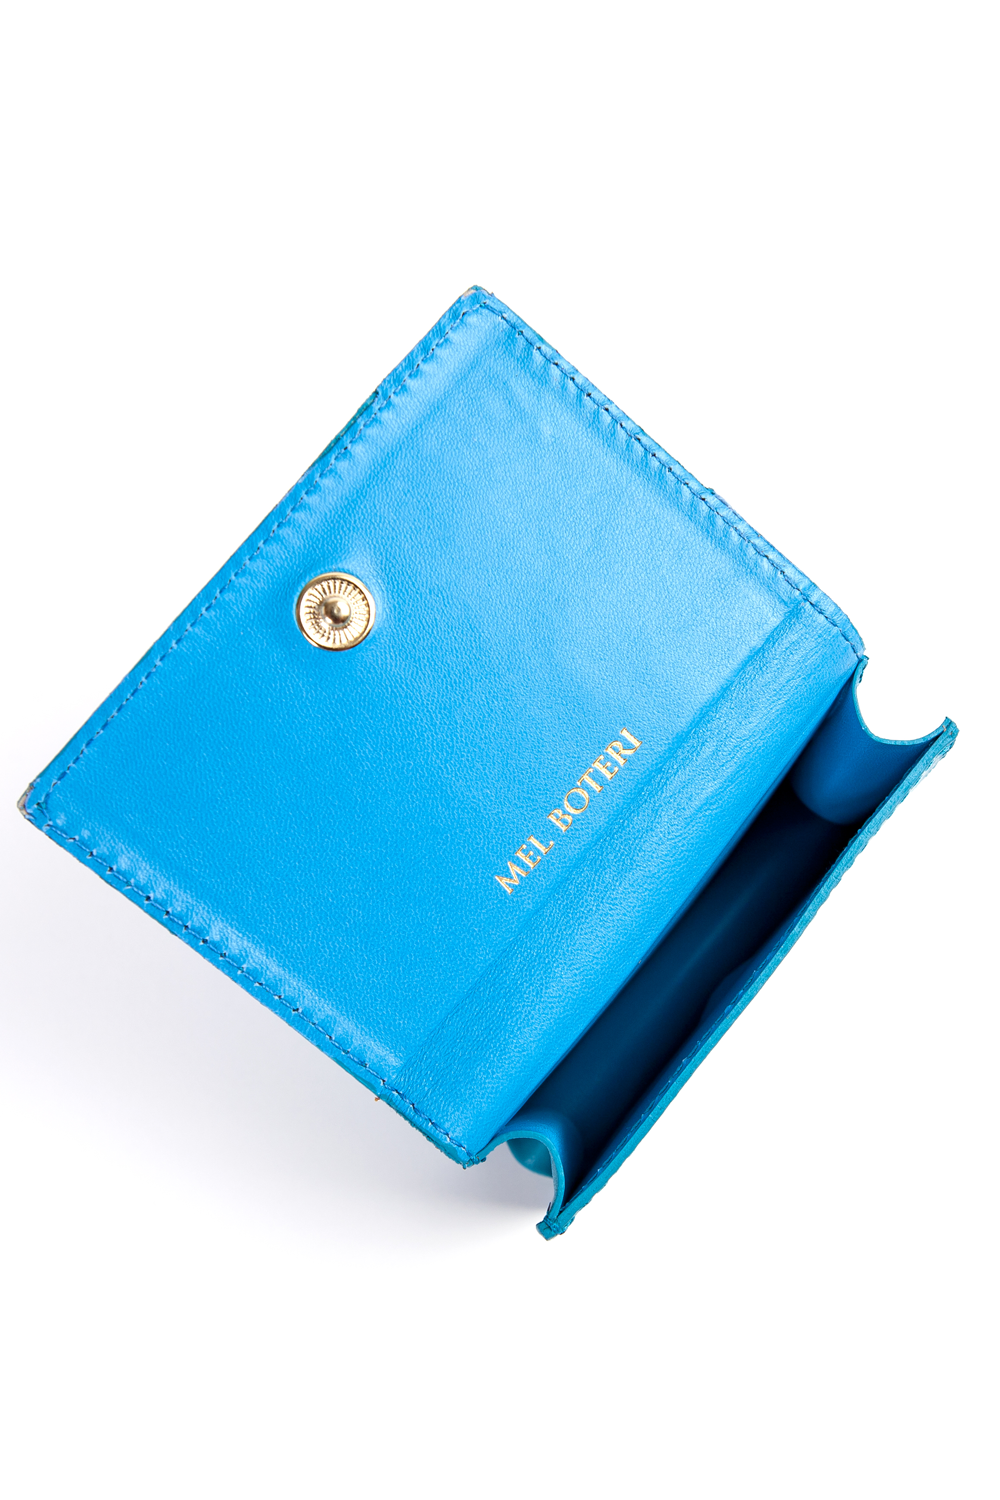 The Mel Boteri Leather Card Holder | Signature Turquoise Interior | Mel Boteri Gift Ideas | Design Your Own